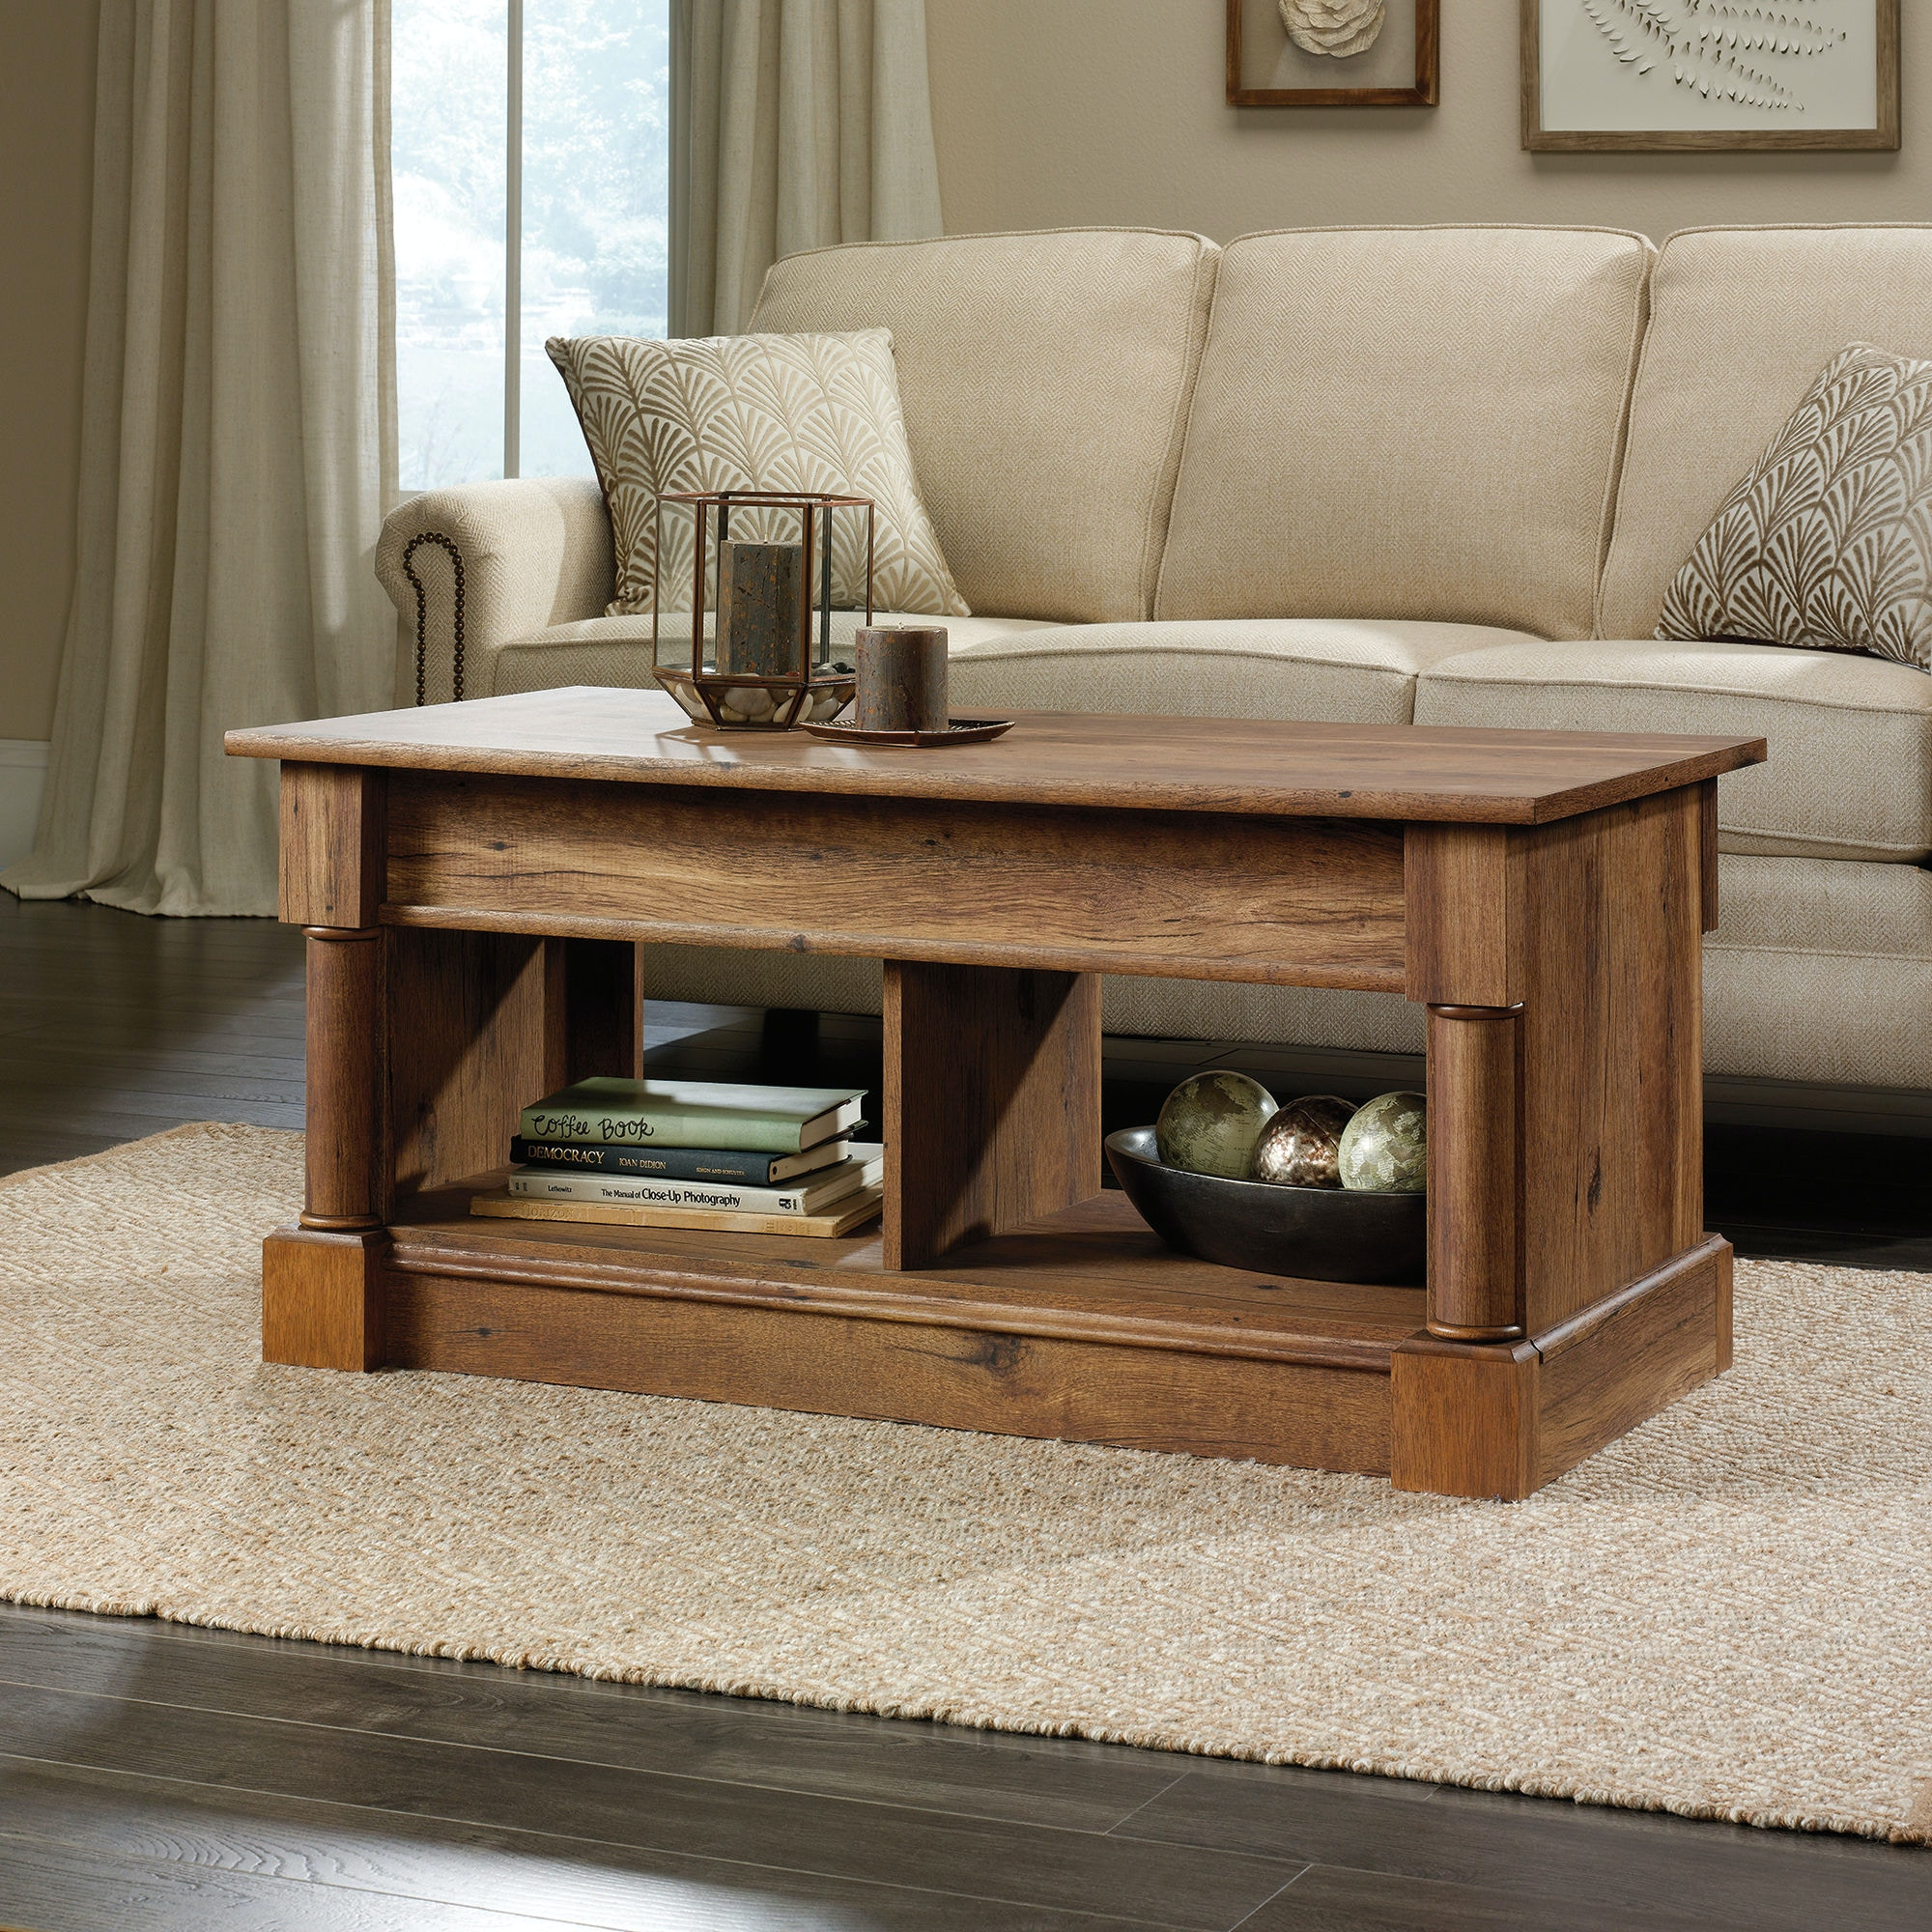 Sauder Lift Top Coffee Table 420716